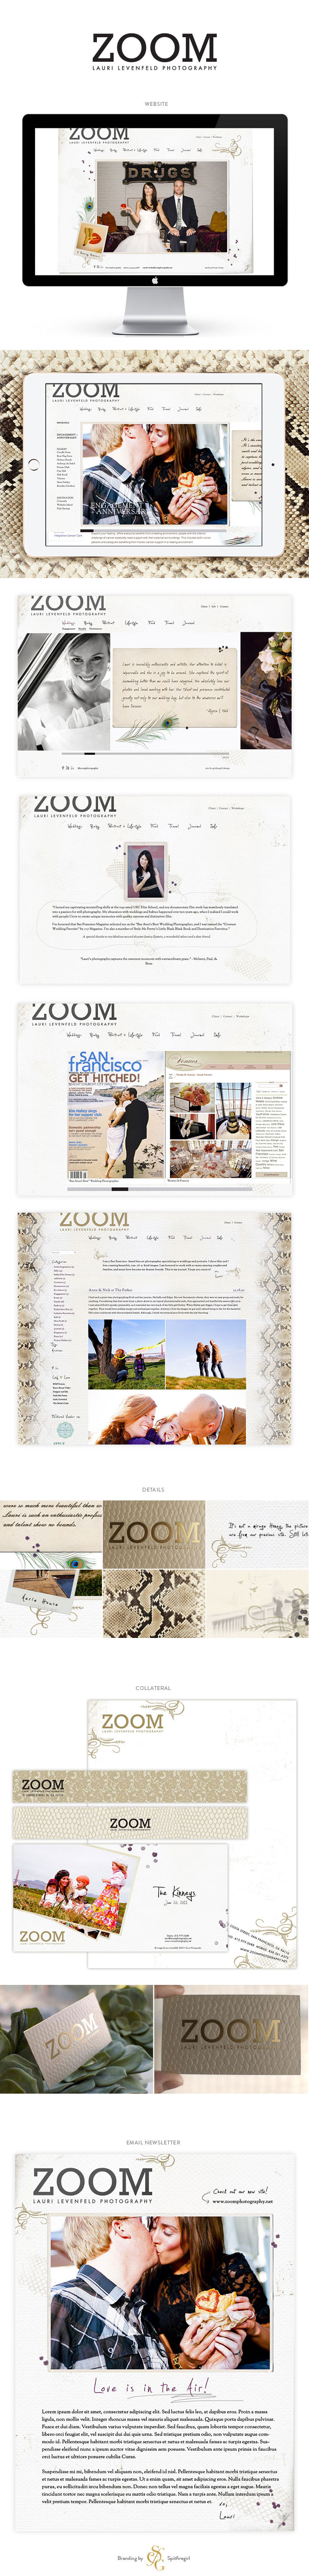 spitfiregirl-client-zoom-photography-board